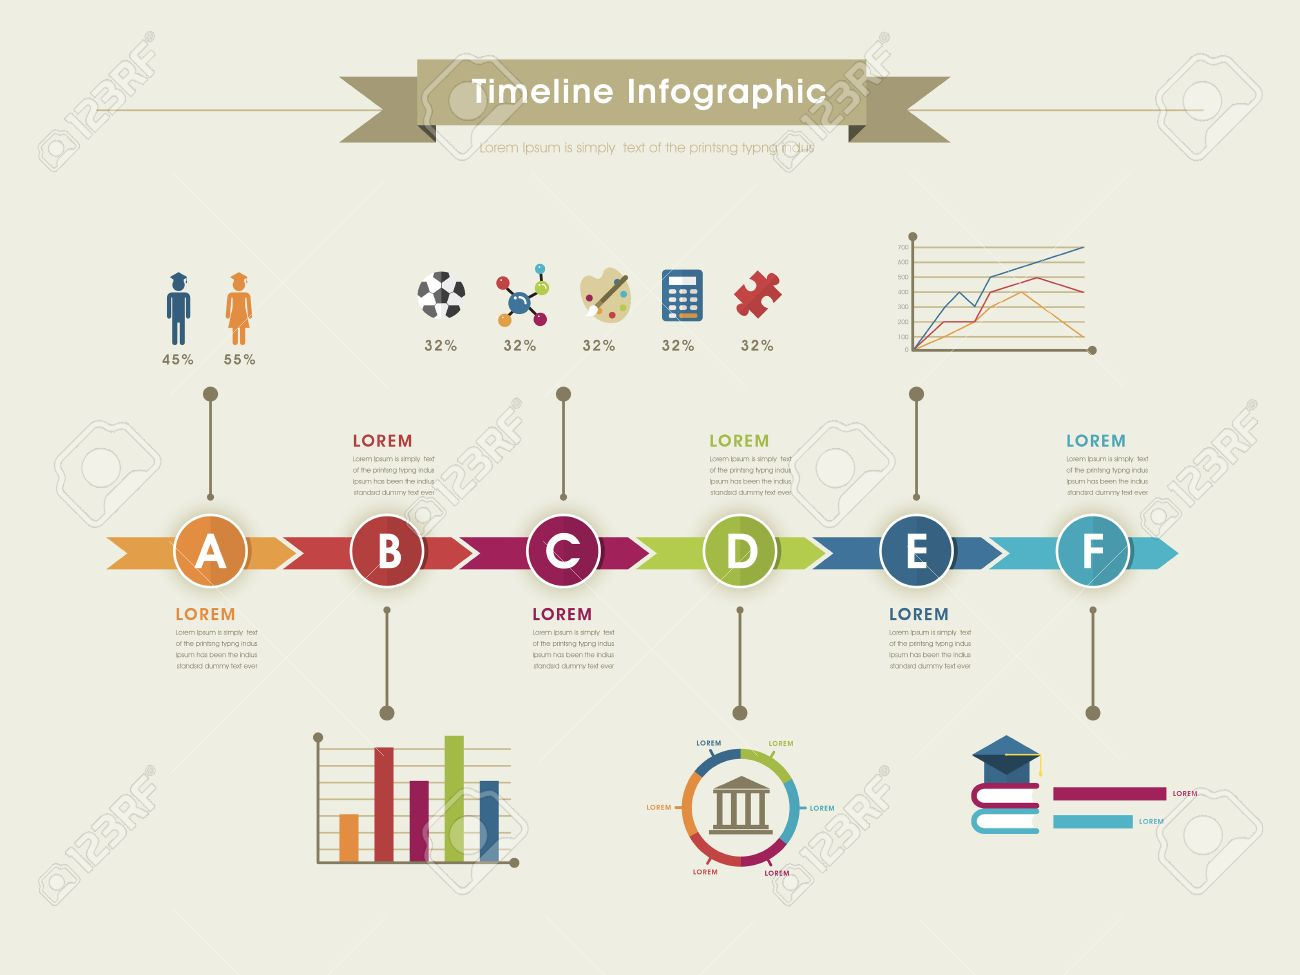 Education Infographic Template Design With Timeline Chart Royalty - Timeline graphic template